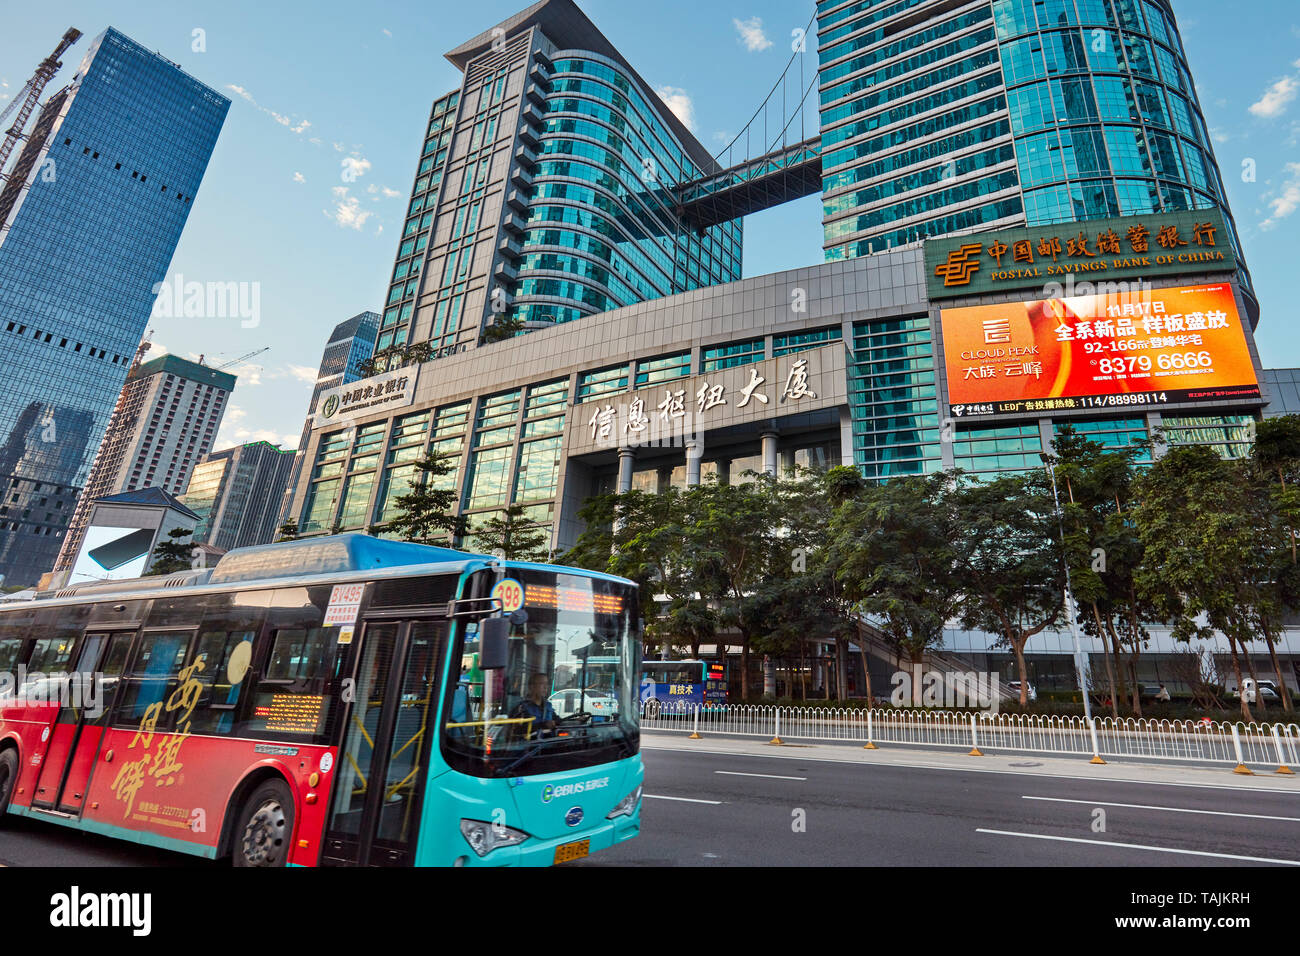 Electric city bus moving on street in Futian Central Business District. Shenzhen, Guangdong Province, China. - Stock Image